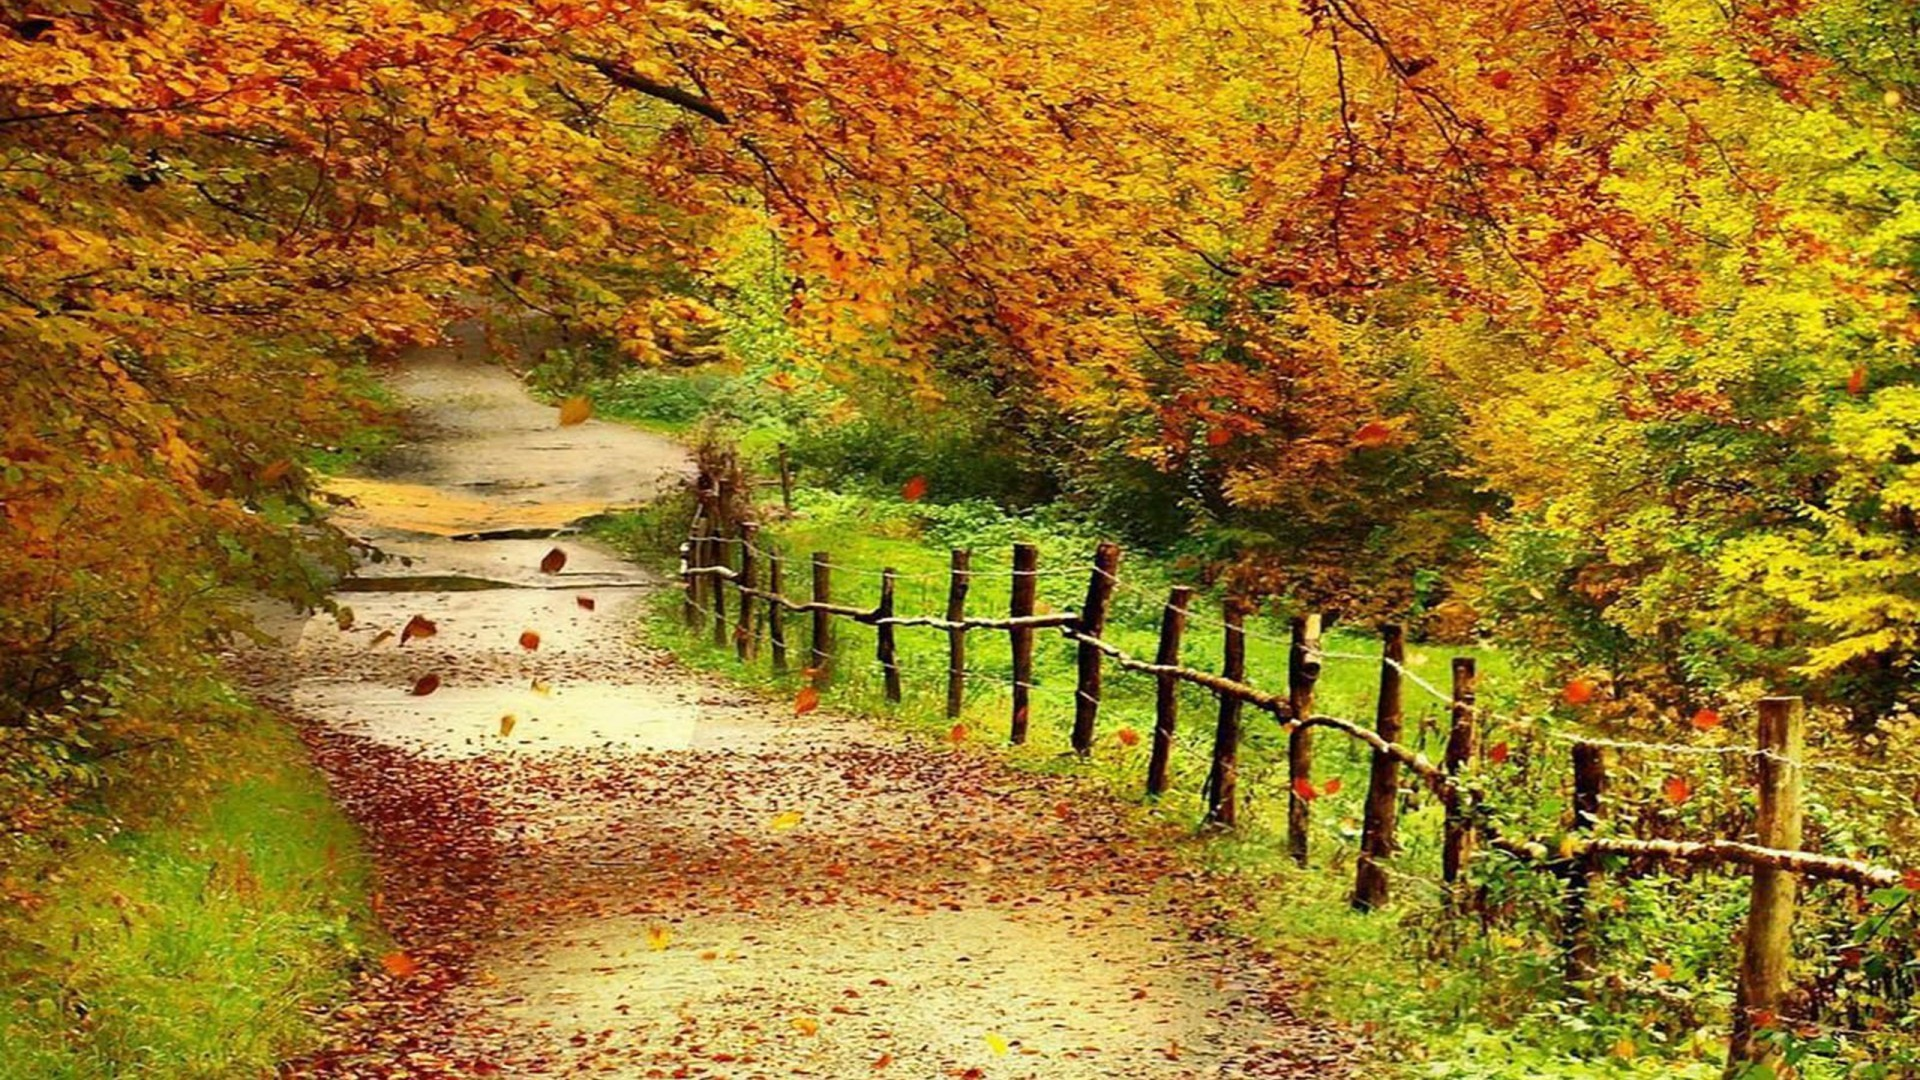 Fall Leaves Live Wallpaper Iphone Autumn Scenery Wallpaper 57 Images